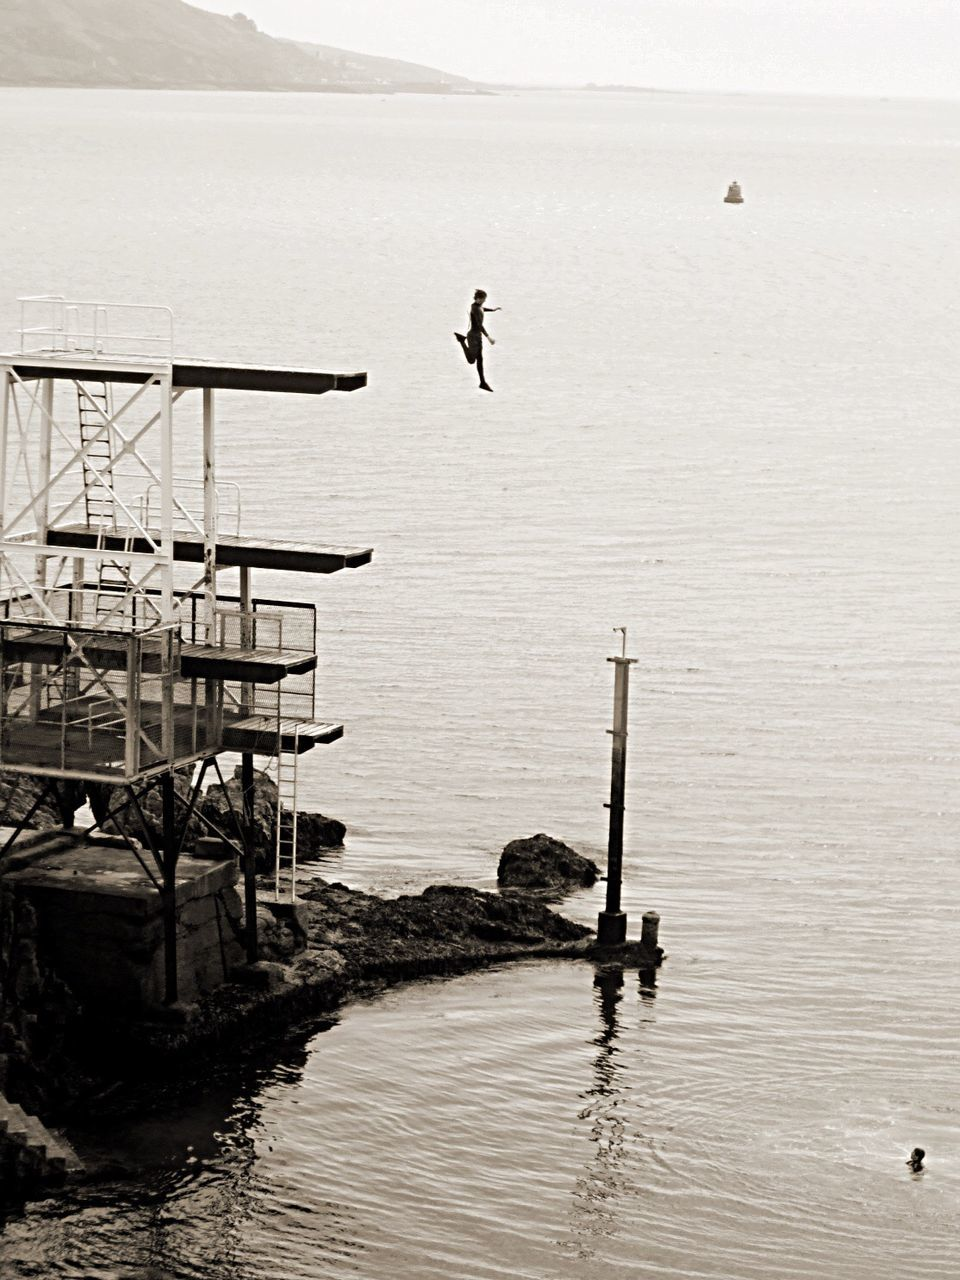 water, sea, nature, men, tranquility, outdoors, full length, real people, tranquil scene, scenics, day, beauty in nature, leisure activity, standing, one person, lifestyles, horizon over water, diving platform, fishing pole, one man only, people